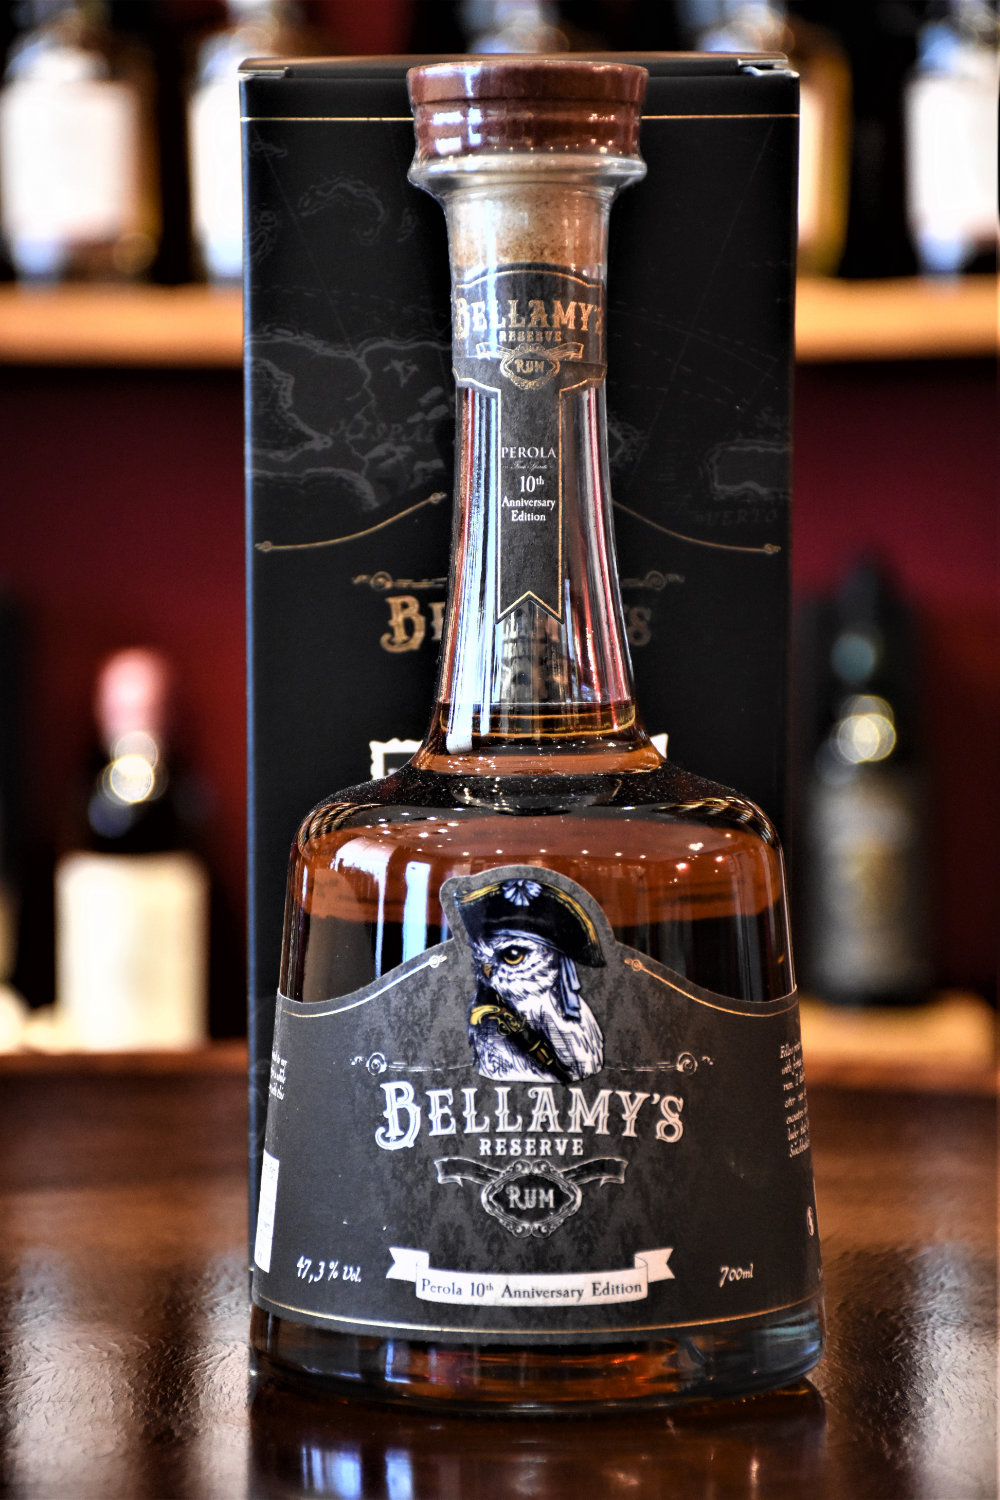 Bellamy´s Reserve Rum Perola 10th Anniversary Edition, 47,3% Alc.Vol., Perola